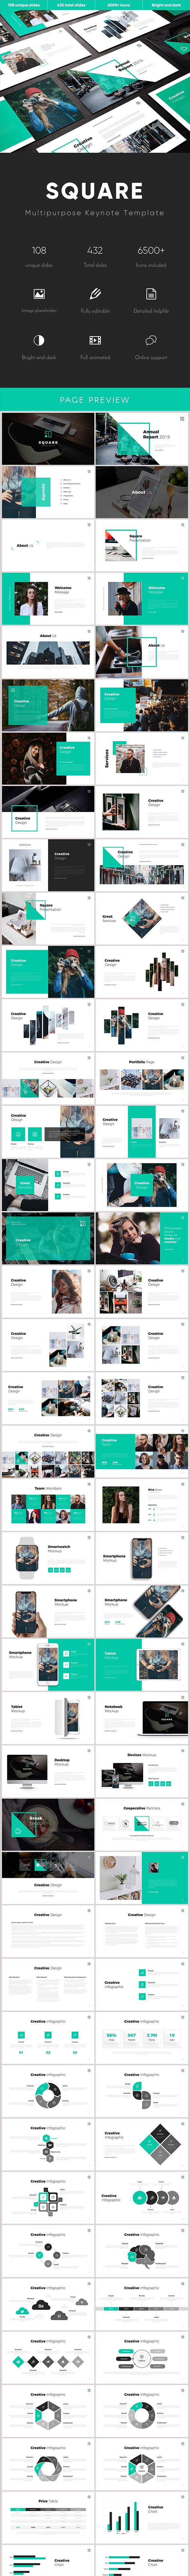 Square Multipurpose Keynote Template - Business Keynote Templates